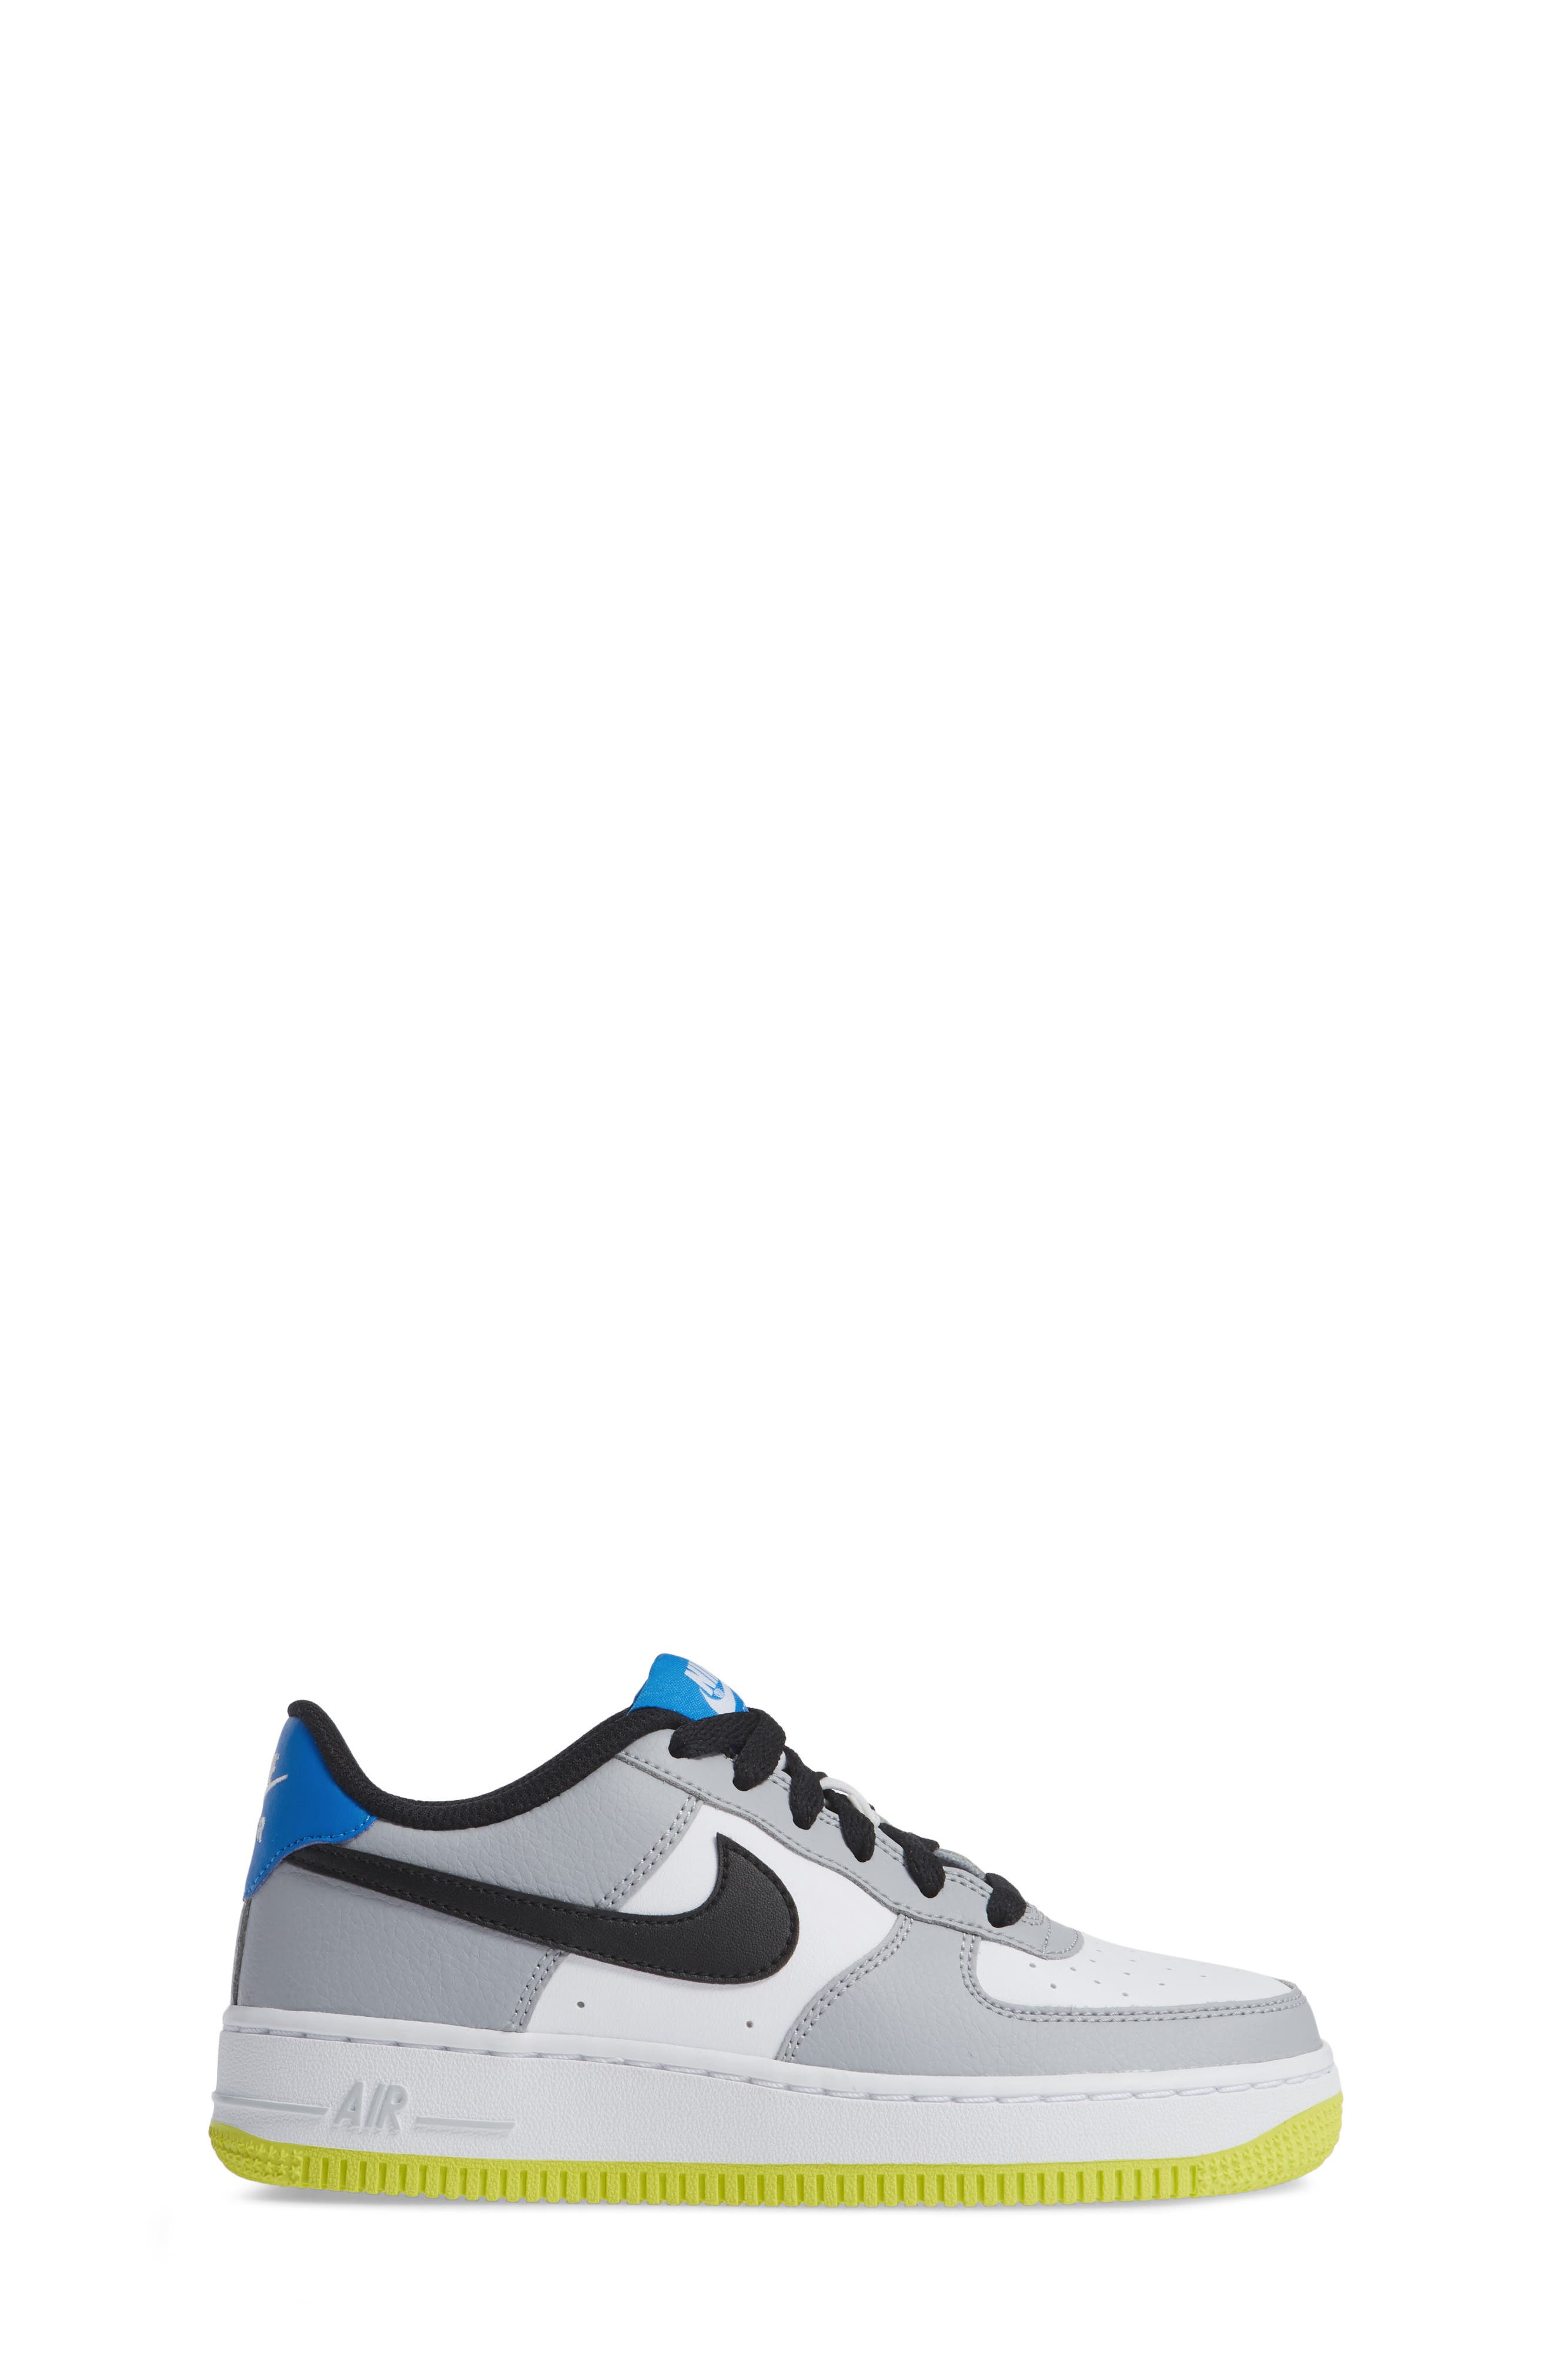 Air Force 1 Sneaker,                             Alternate thumbnail 6, color,                             Wolf Grey/ Black/ White/ Blue